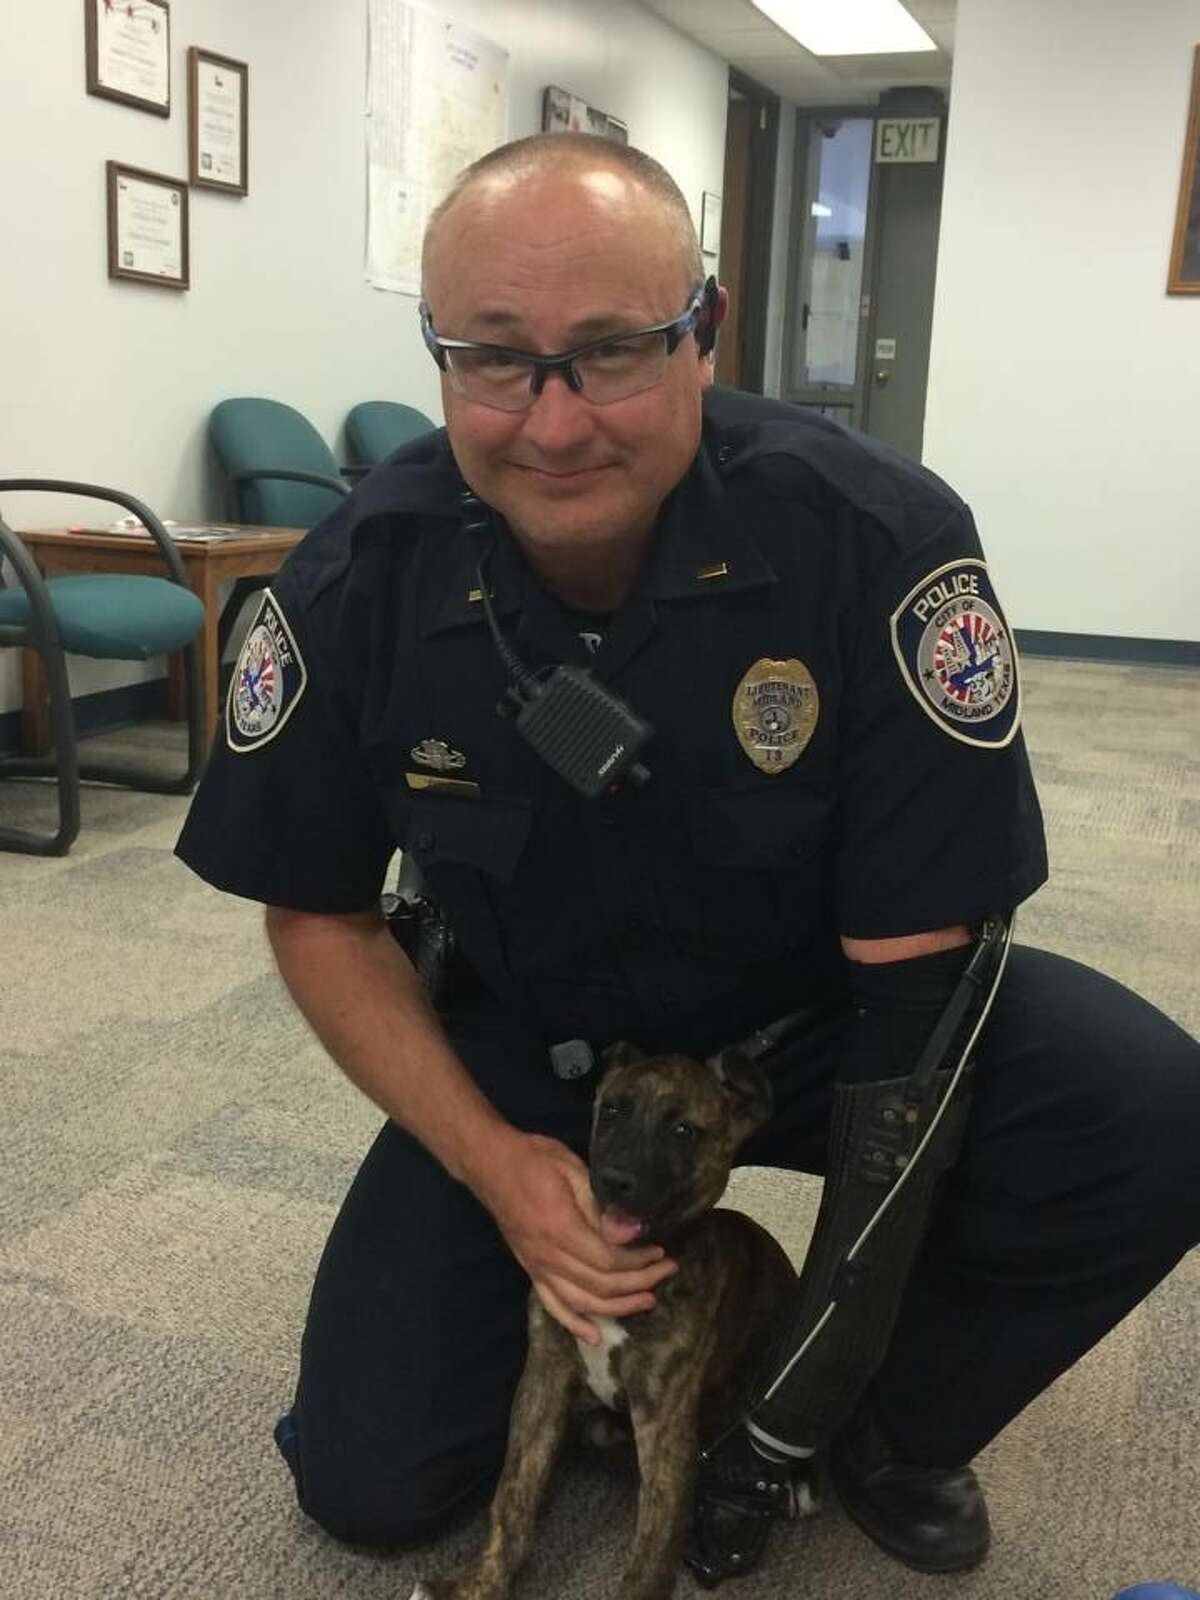 Midland Police Department Lt. Brian Rackow officially adopted the puppy, named Marley, on Tuesday.